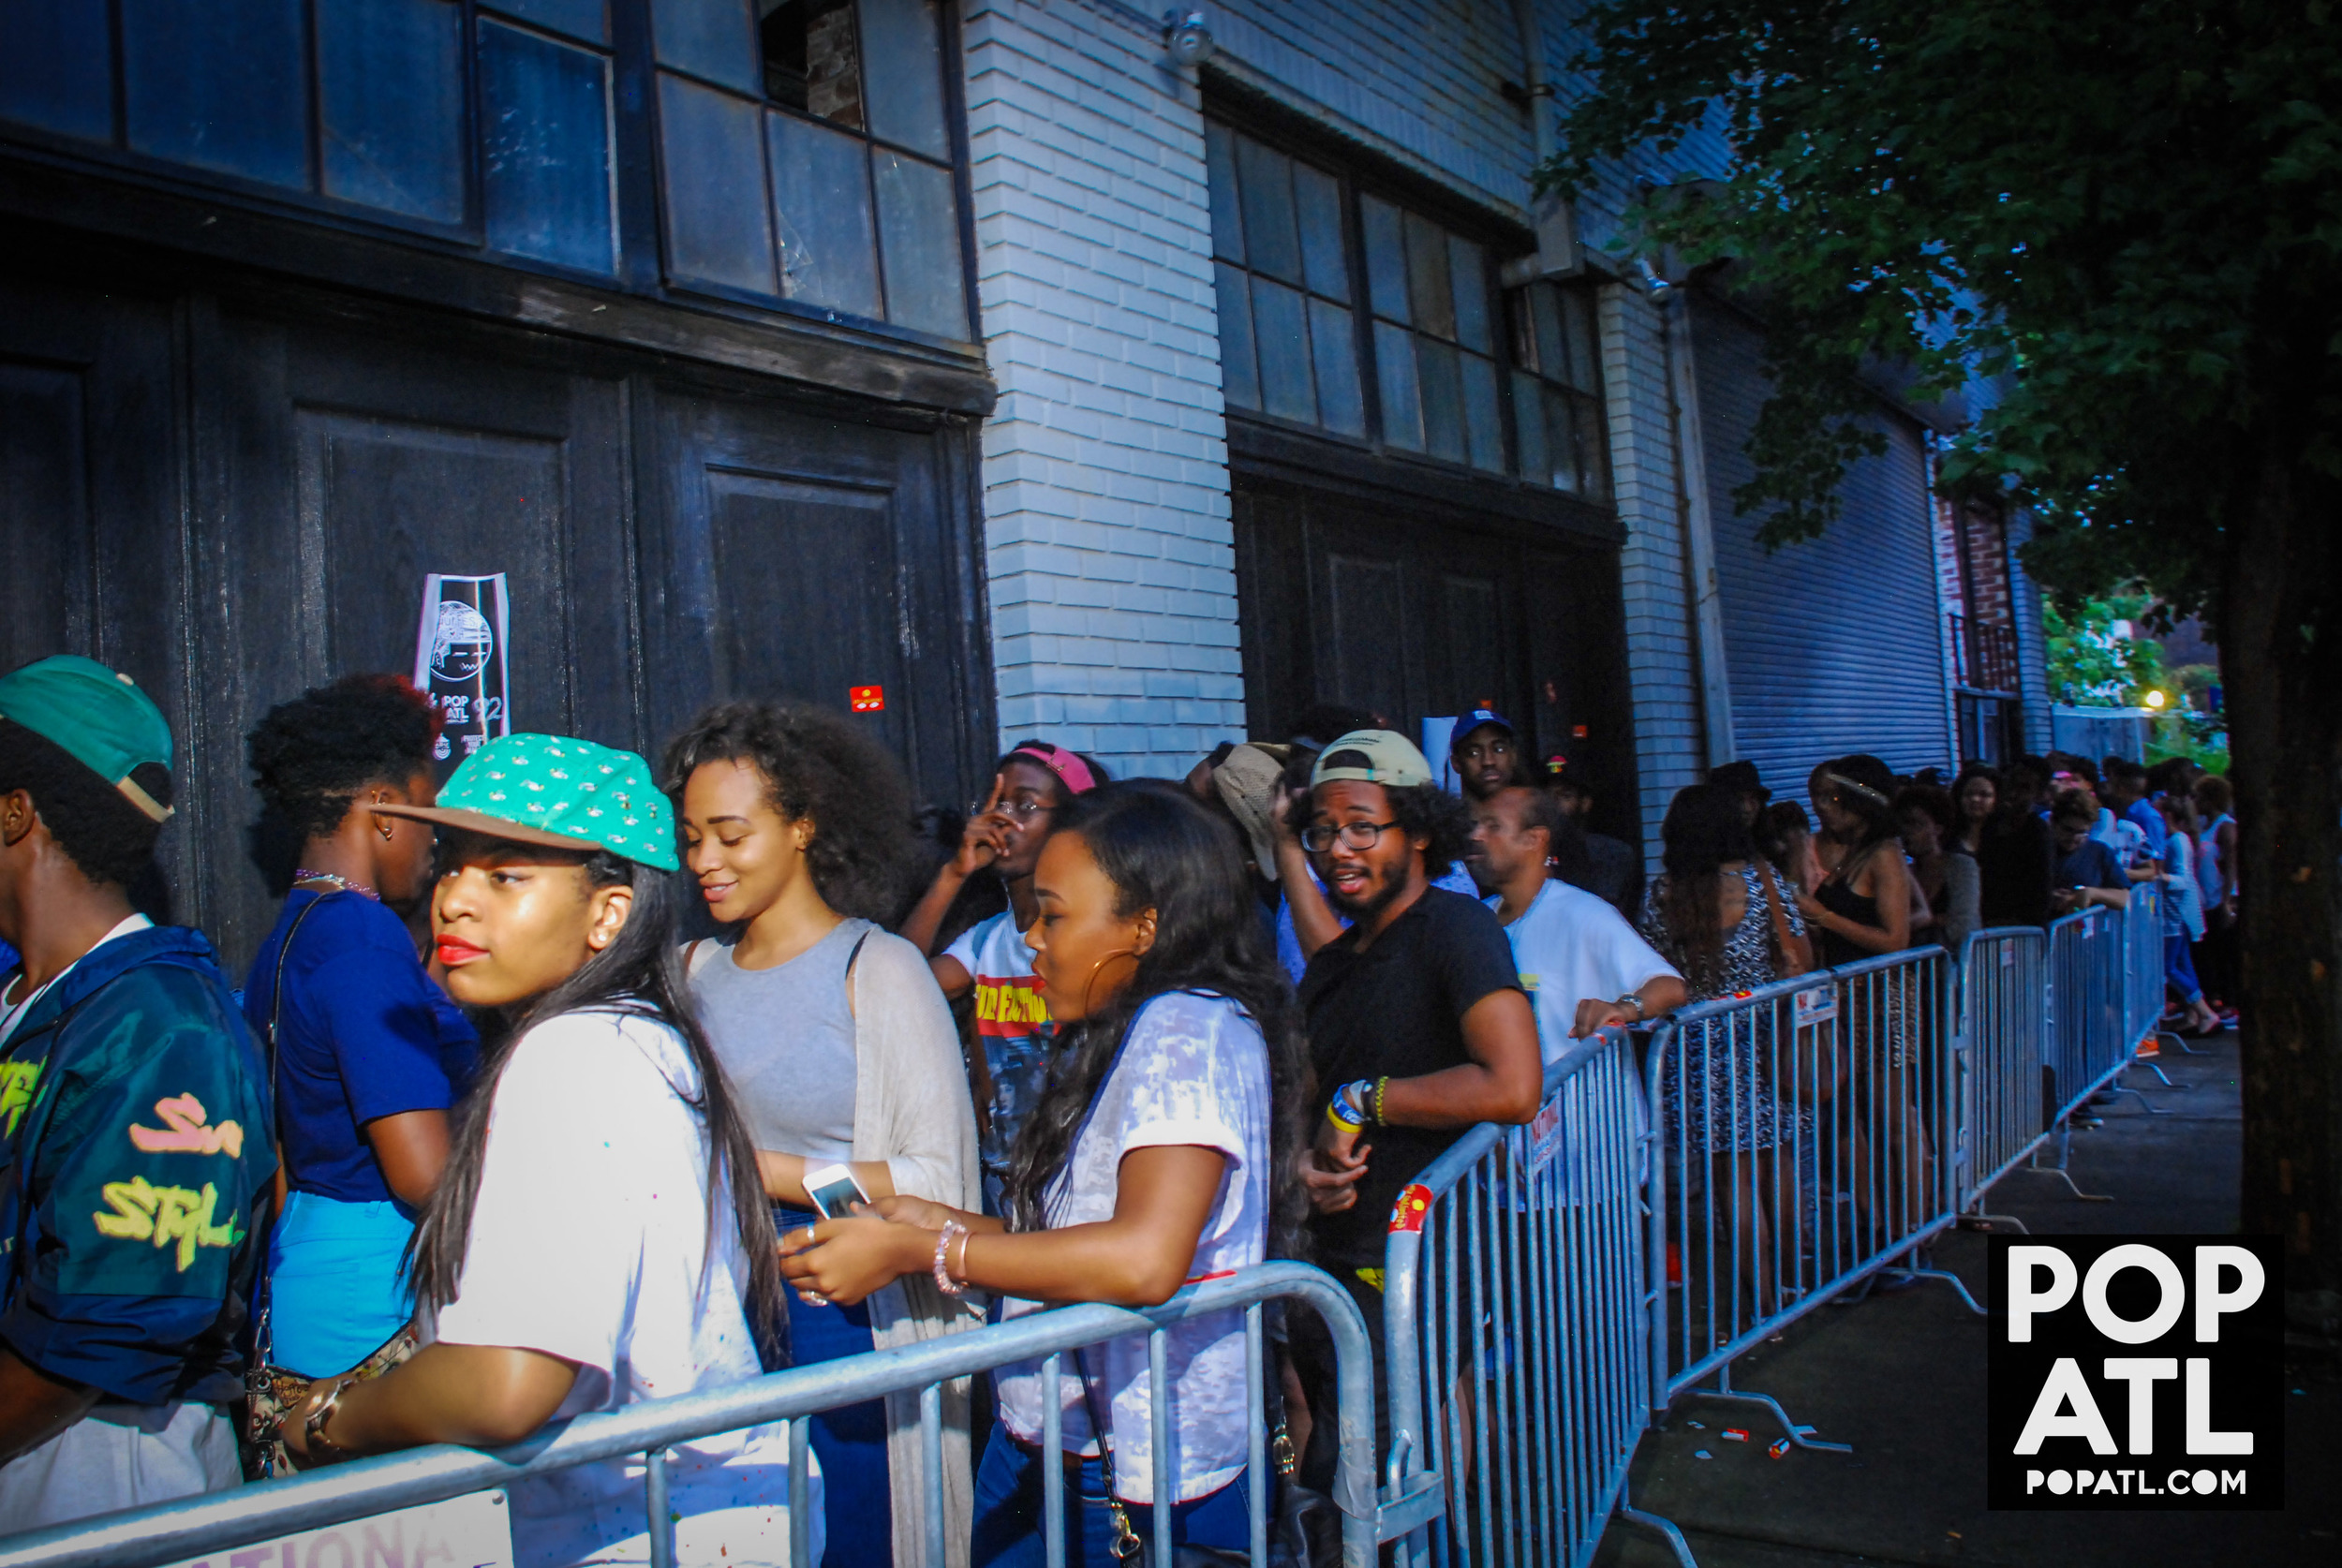 RAURY-RAURFEST-AT-POP-ATL-6.jpg